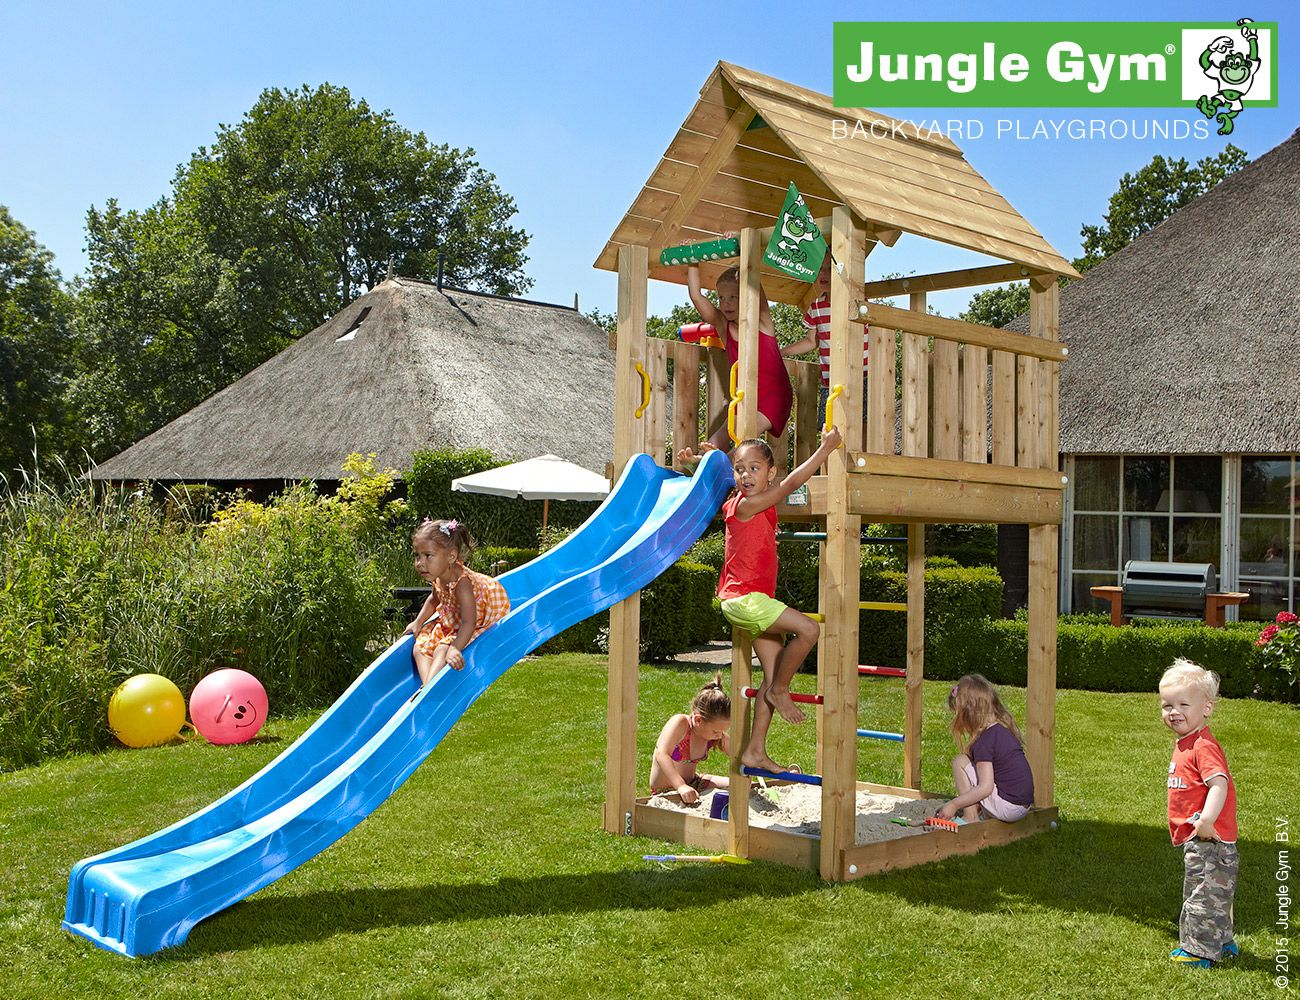 cheap swing sets kids swing sets children play items jungle gym playground